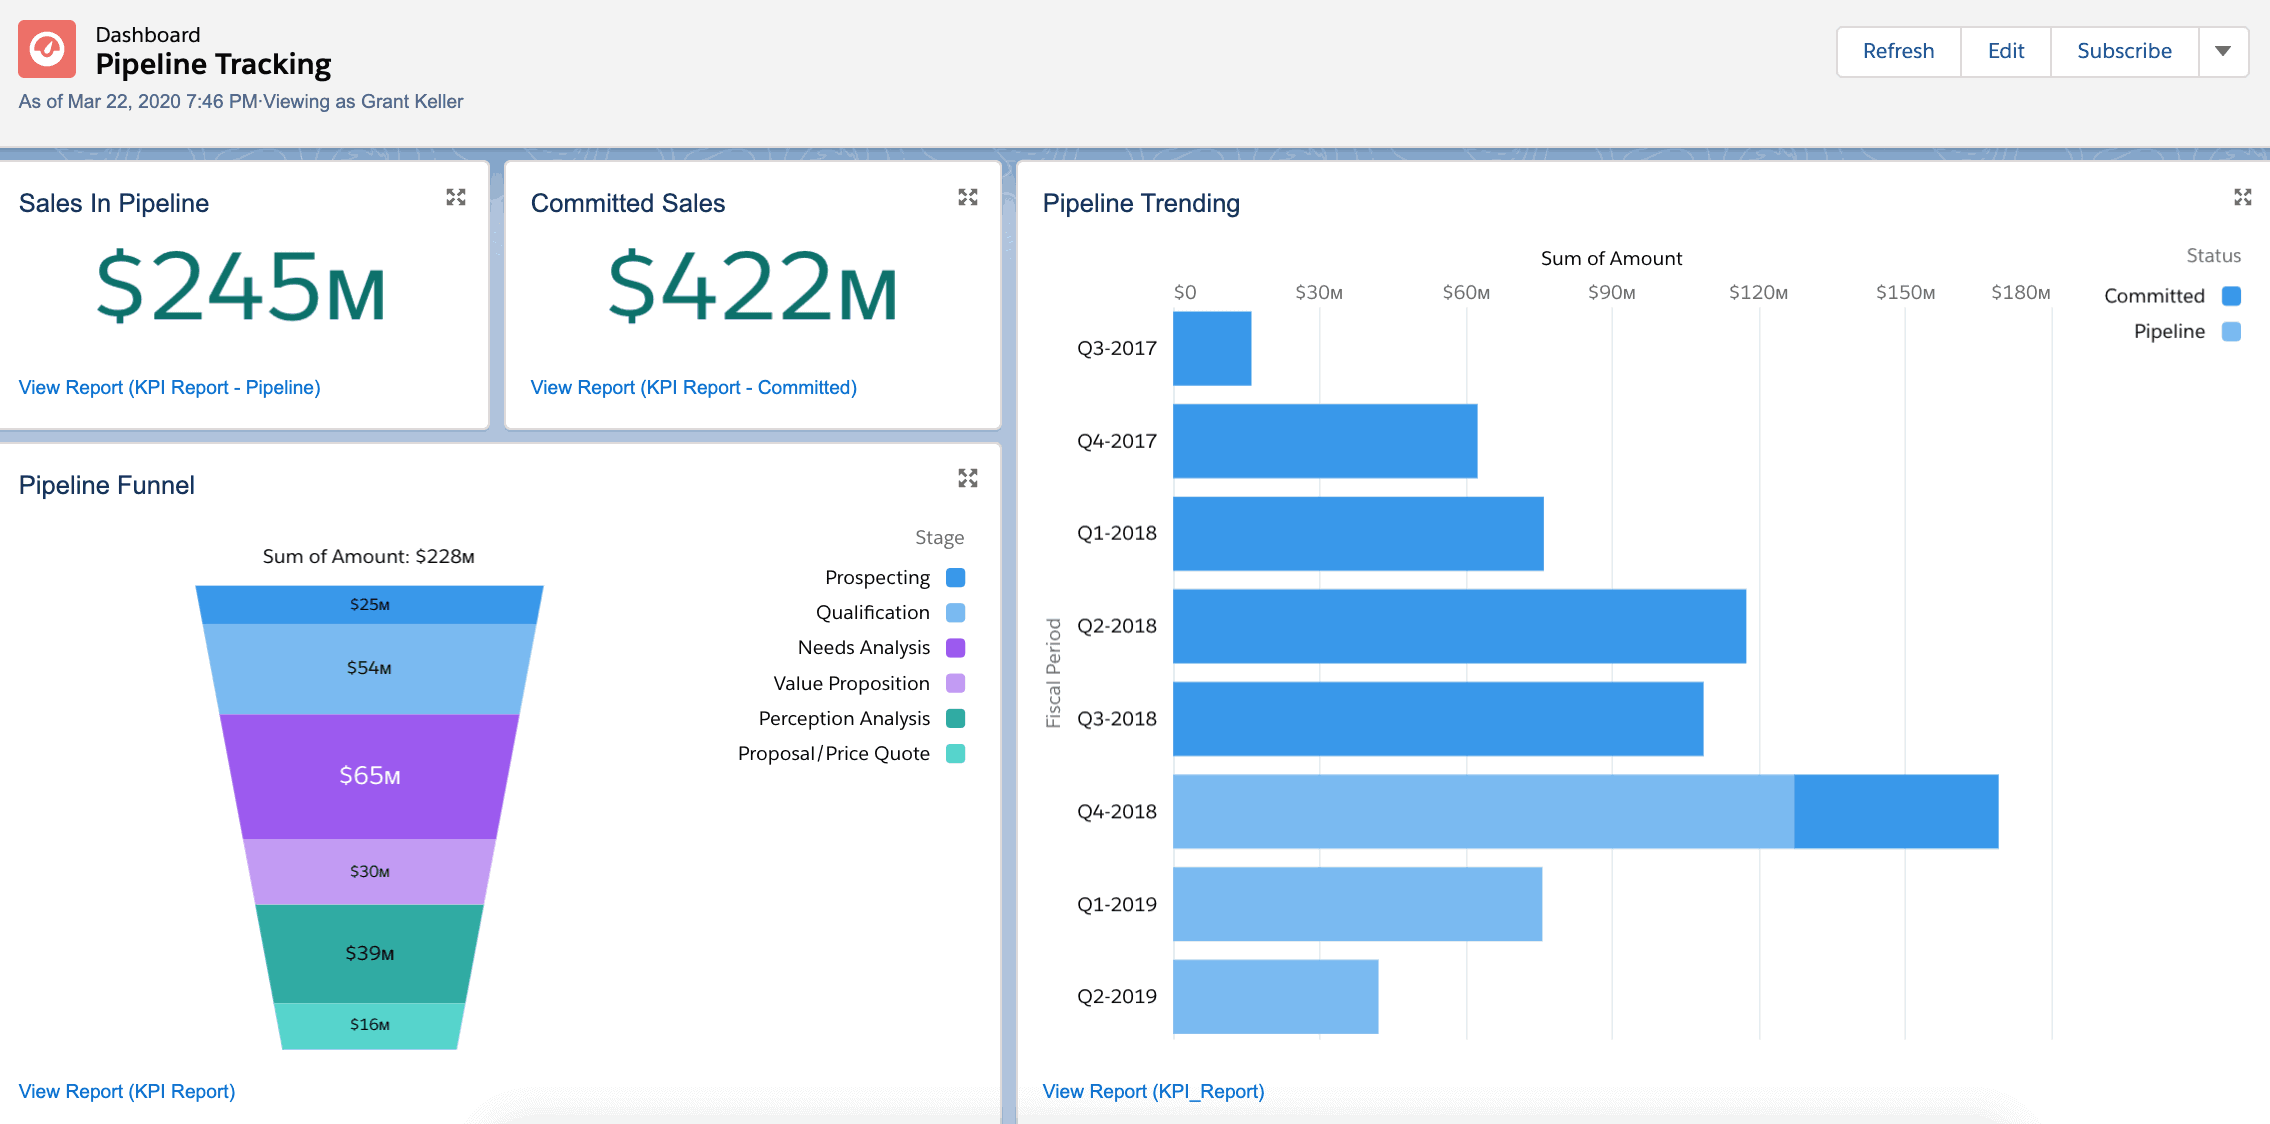 Pipeline Tracking Dashboard